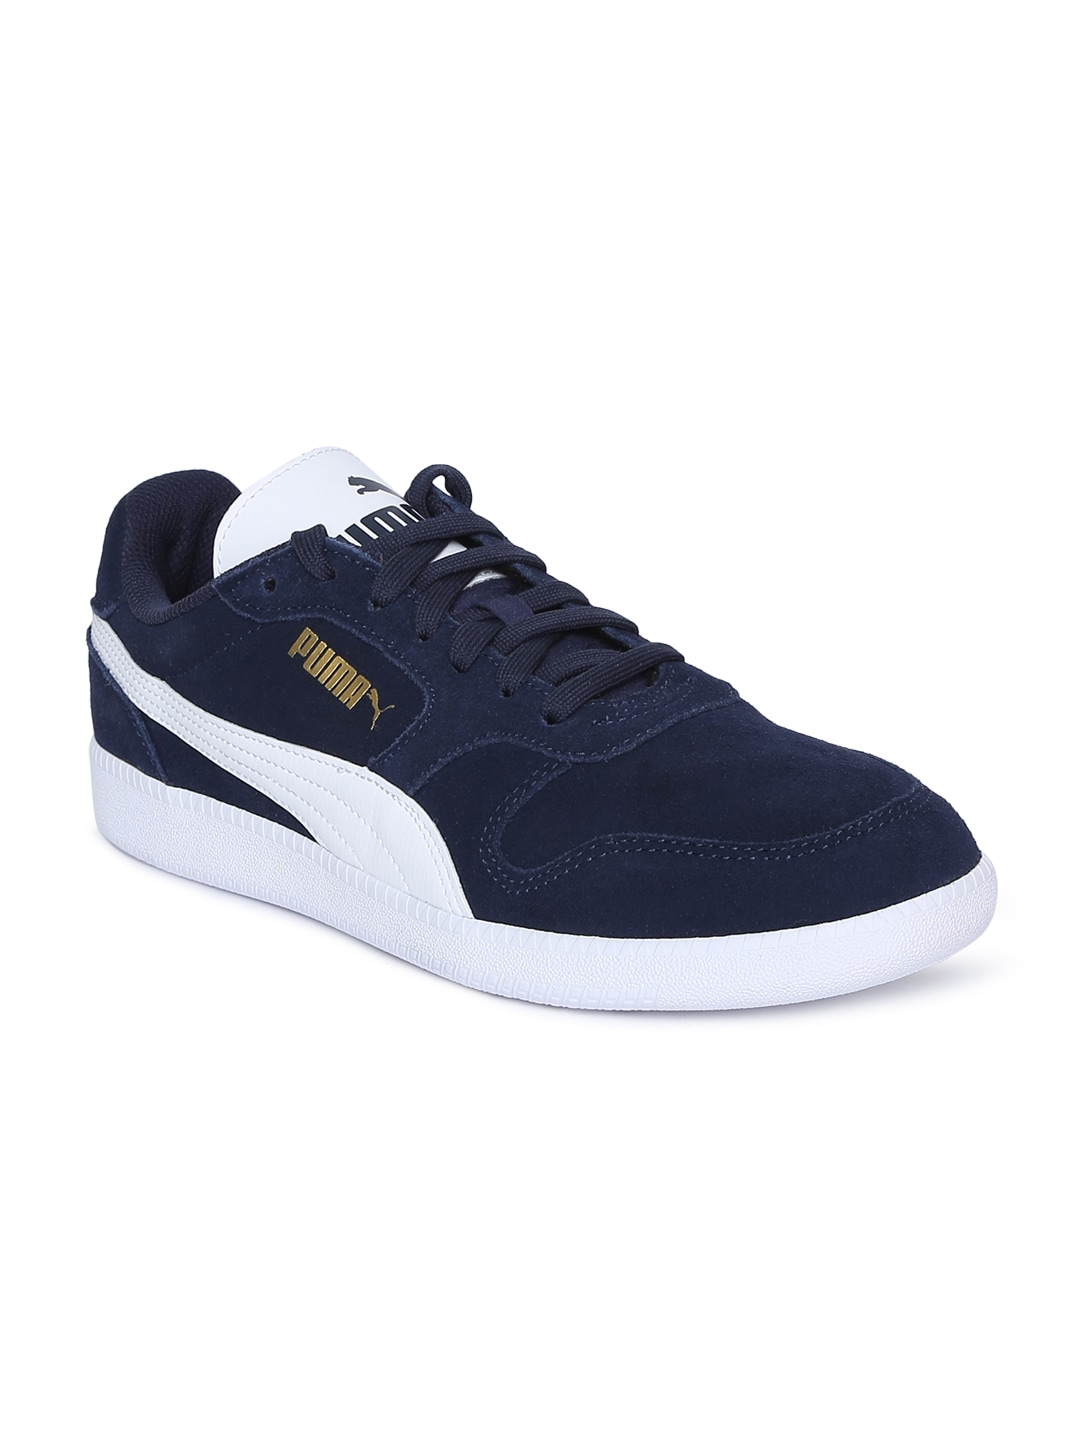 fa124360209 Buy Puma Men Black G Vilas 2 Core IDP Sneakers - Casual Shoes for ...